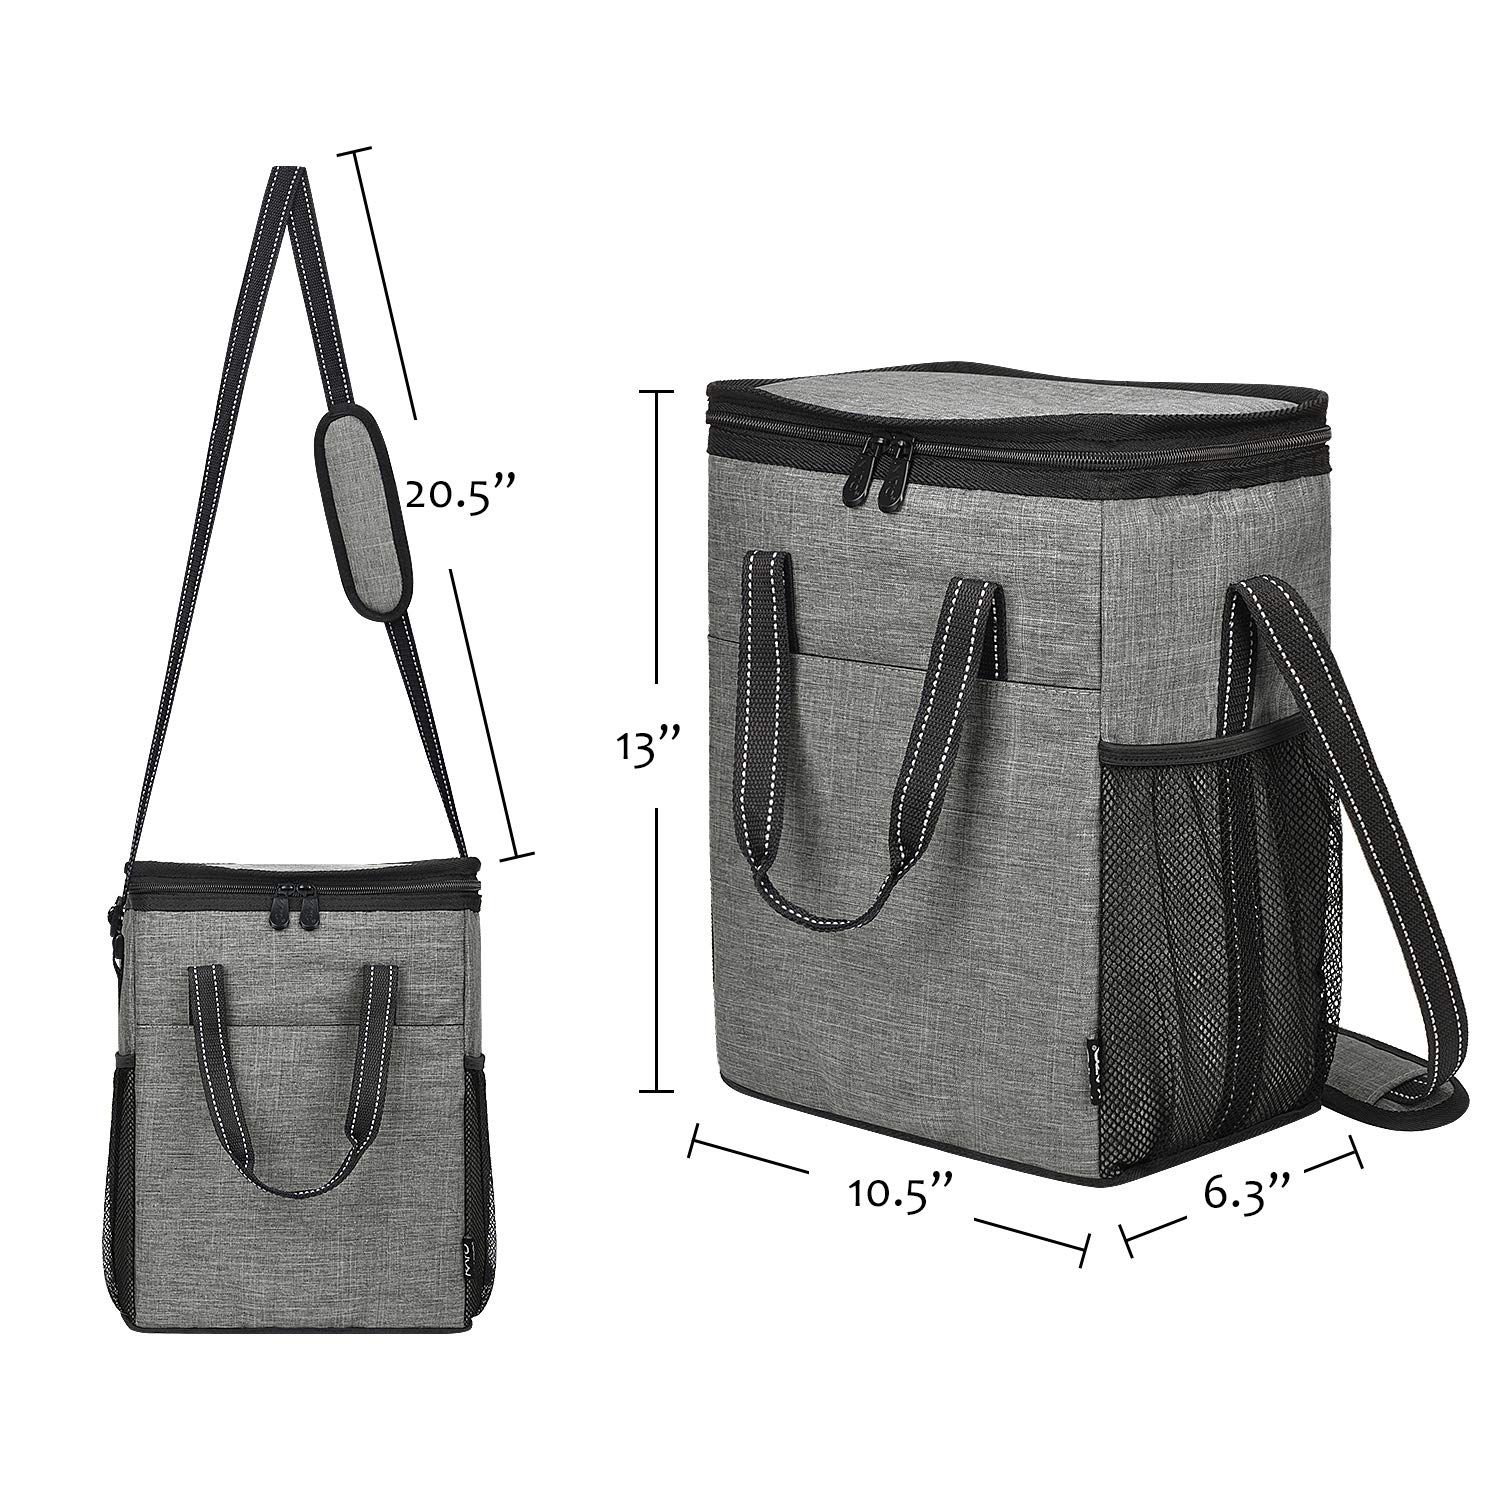 Kato 6 Bottle Wine Carrier Insulated Leakproof Padded Wine Cooler Carrying Tote Bag For Travel Camping And Picni Gifts For Wine Lovers Wine Carrier Wine Lovers